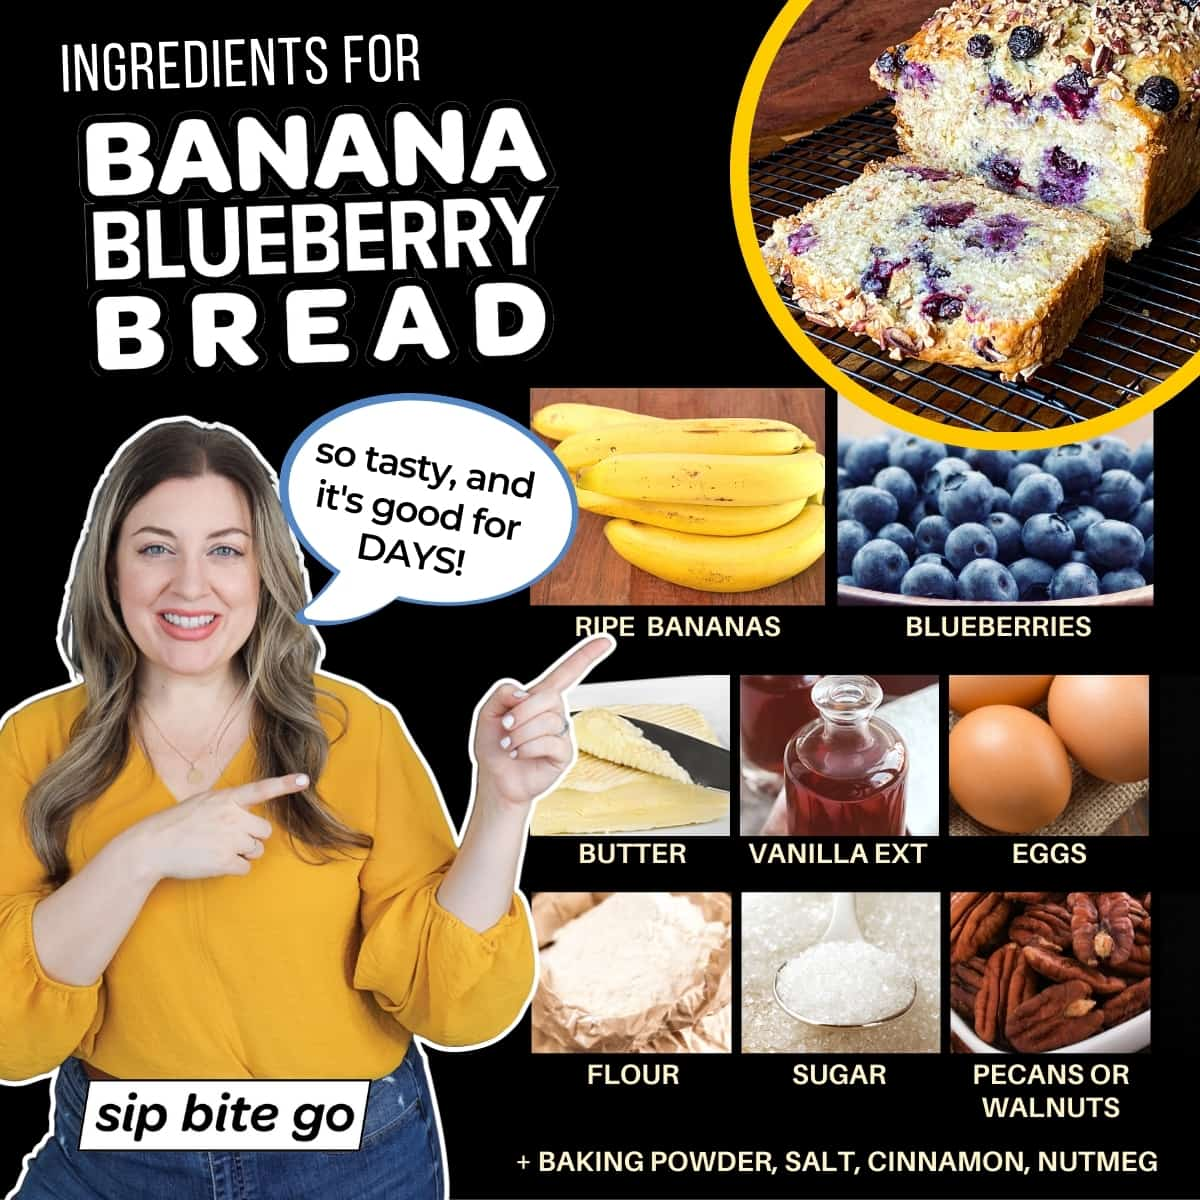 Infographic with ingredients for banana blueberry bread